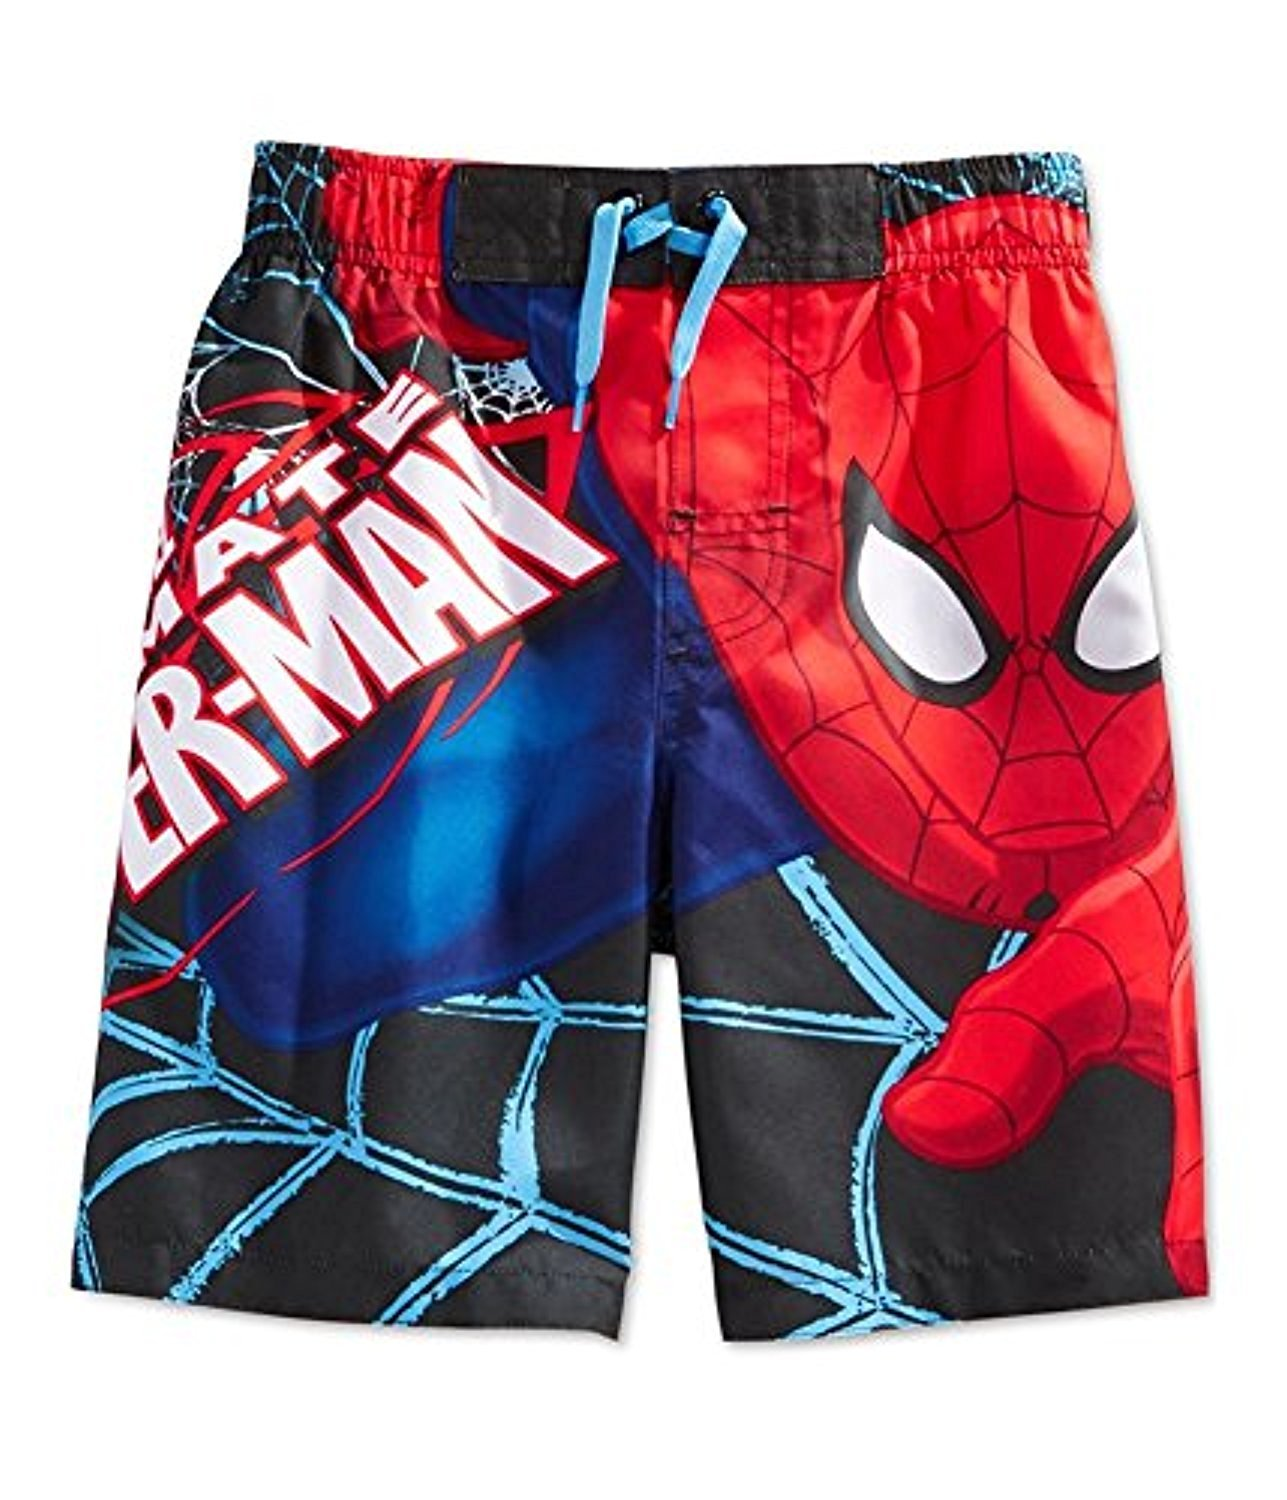 Marvel Ultimate Spider-Man Little Boys Superhero Swim Trunks Board Shorts 357002SP